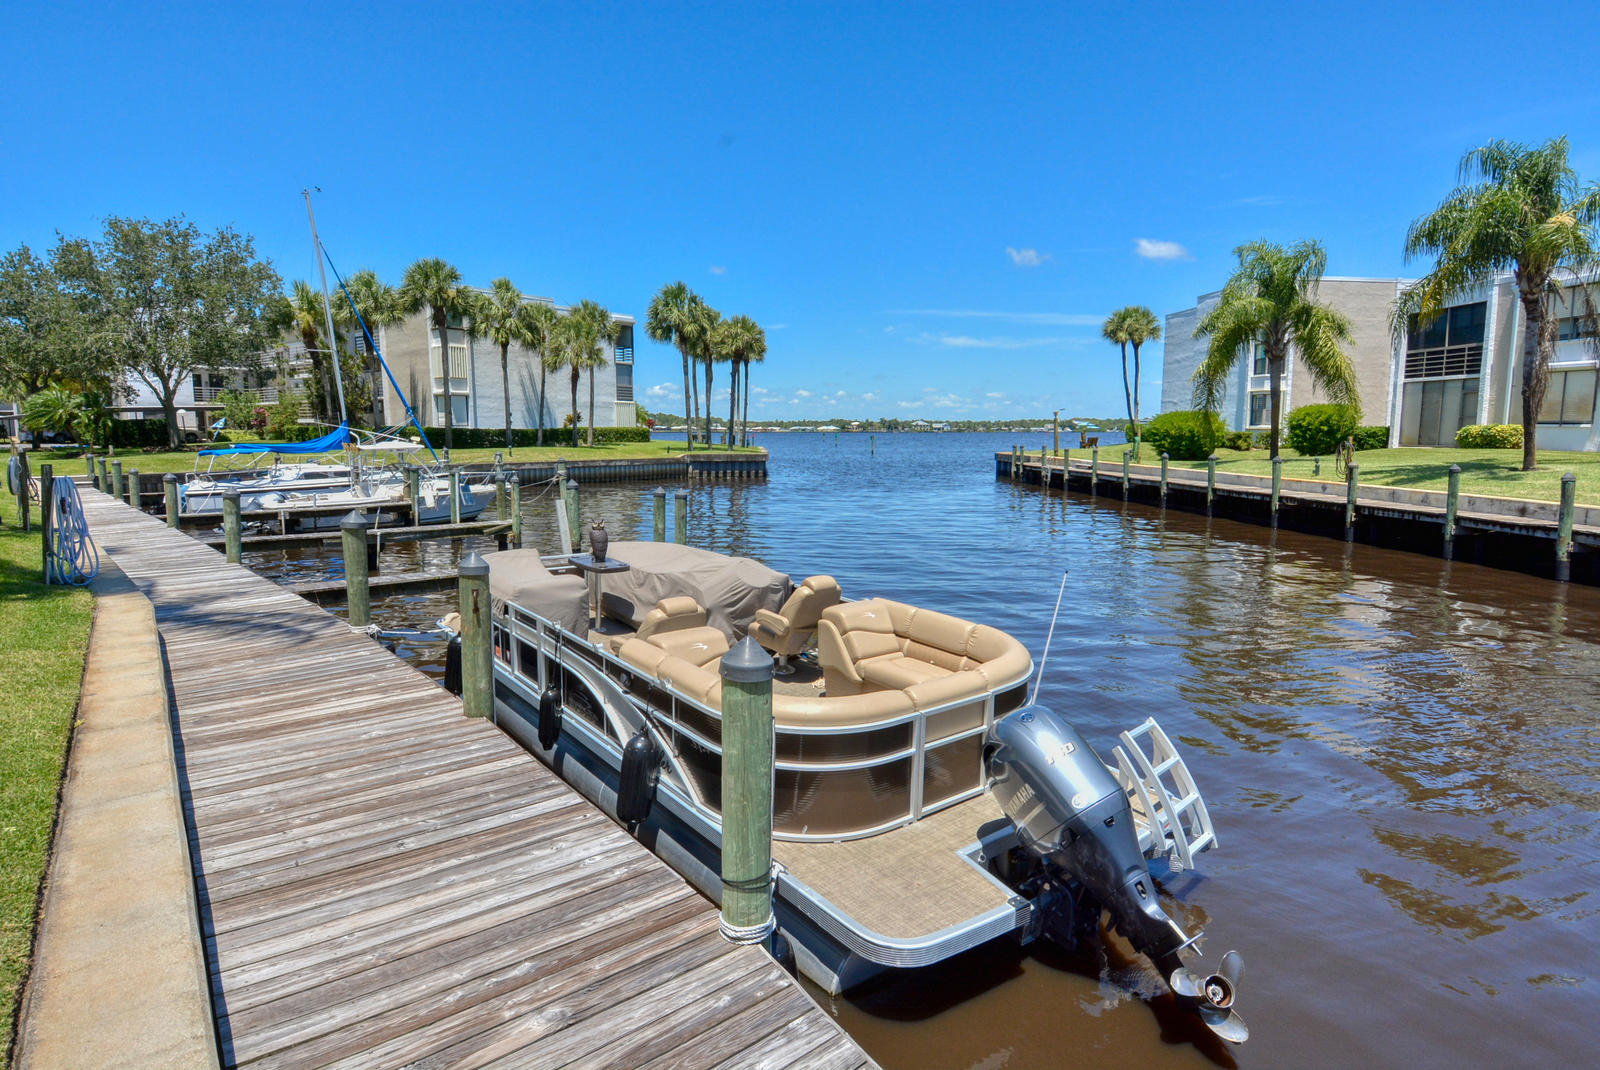 Inlet from St Lucie River